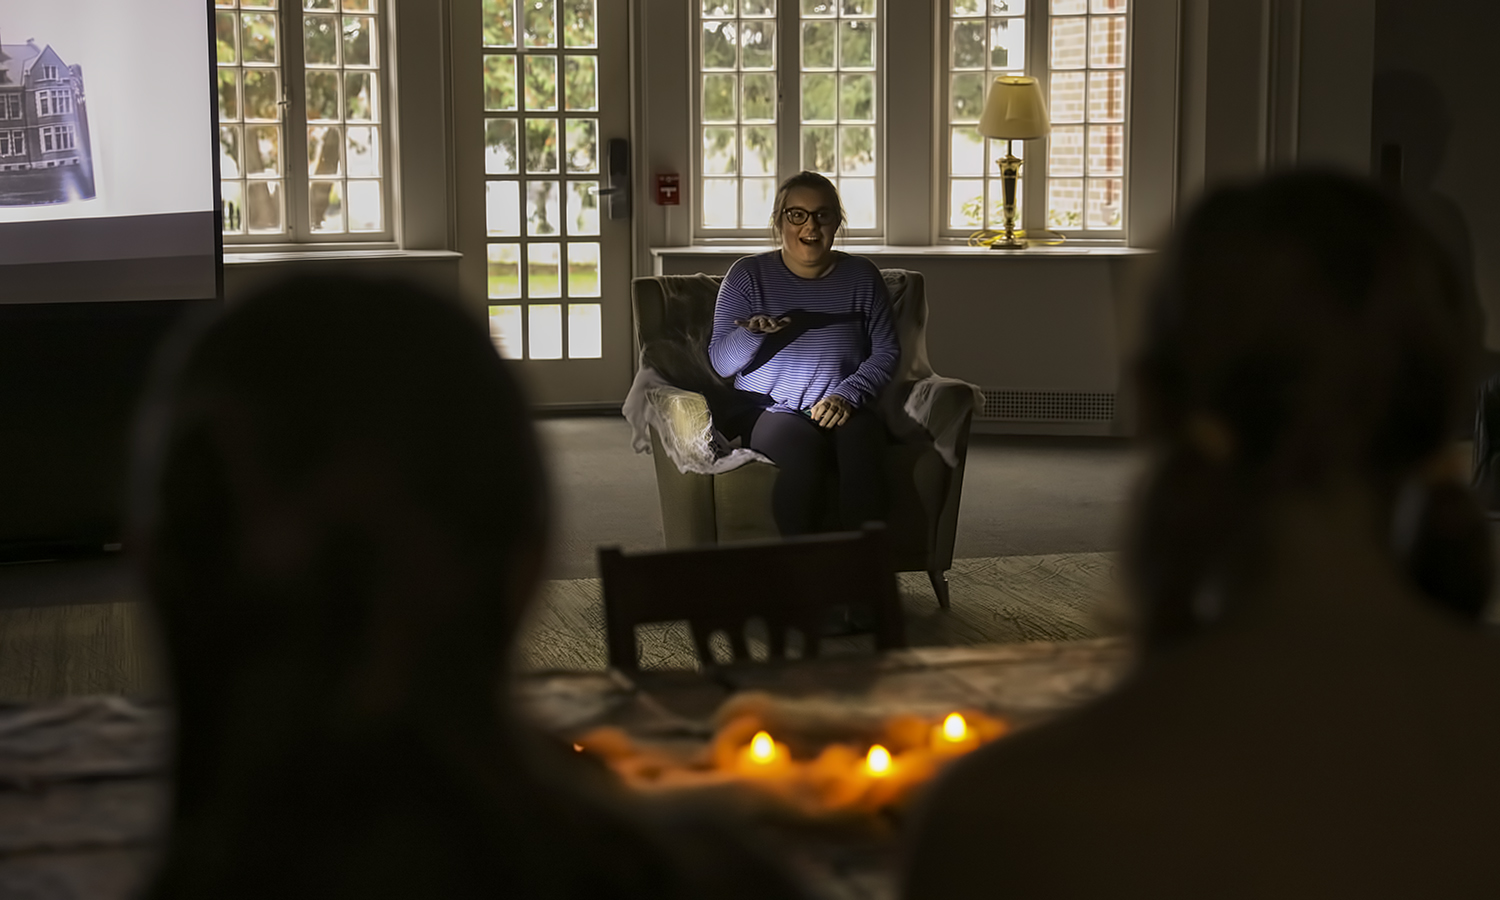 Alyssa Kelly â19 tells a ghost story about Blackwell House during âTea and Tales of William Smith Hauntingâ in Comstock Hall.